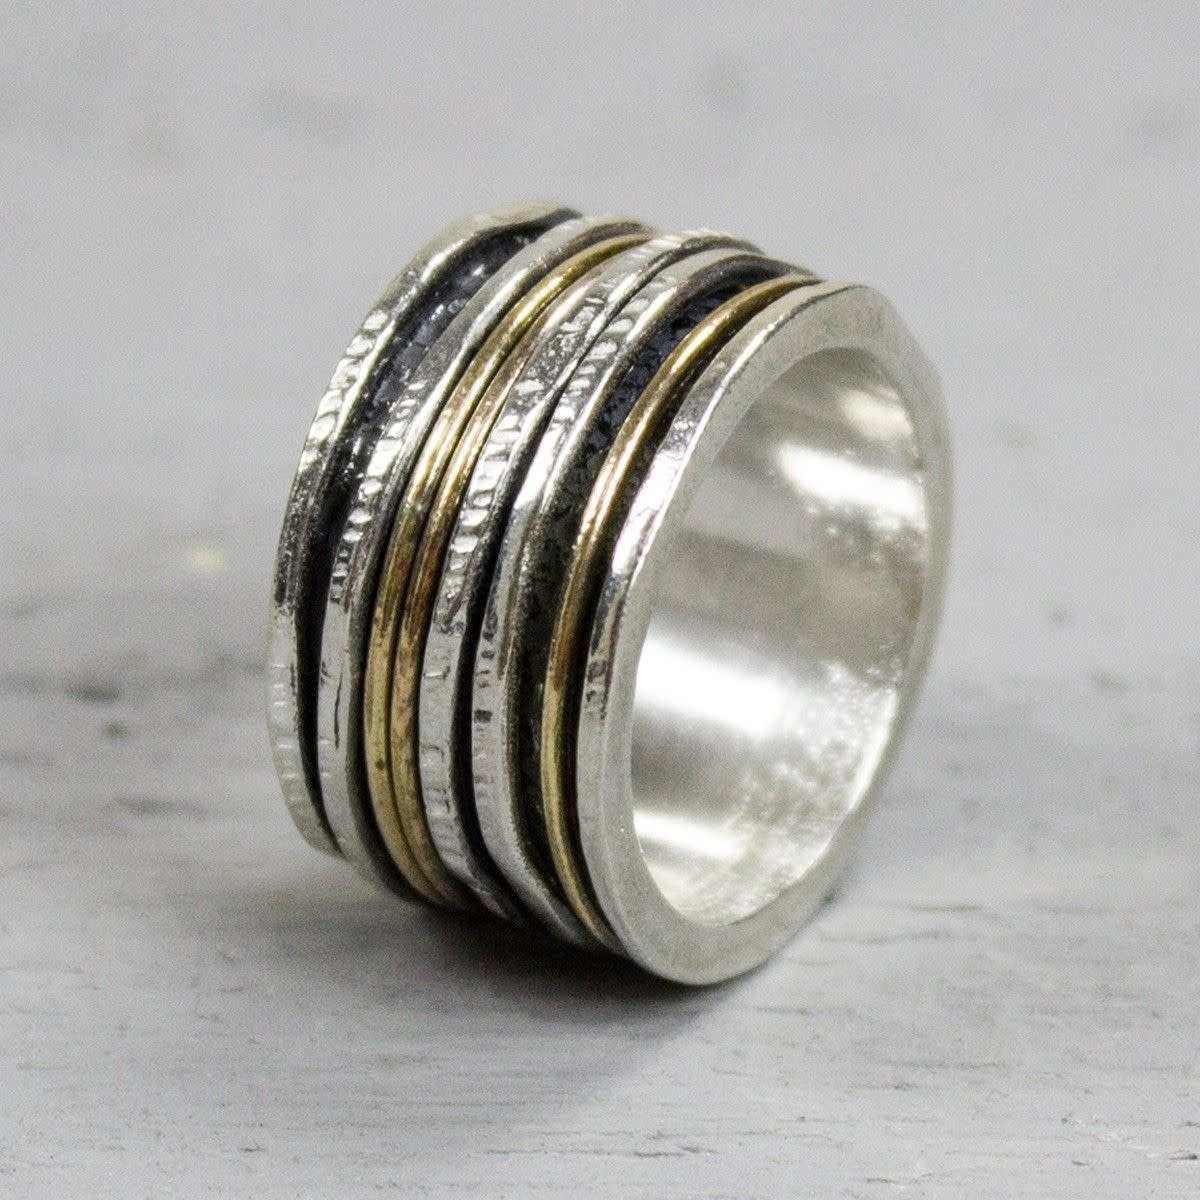 Ring Silver + Gold Filled 19436-5